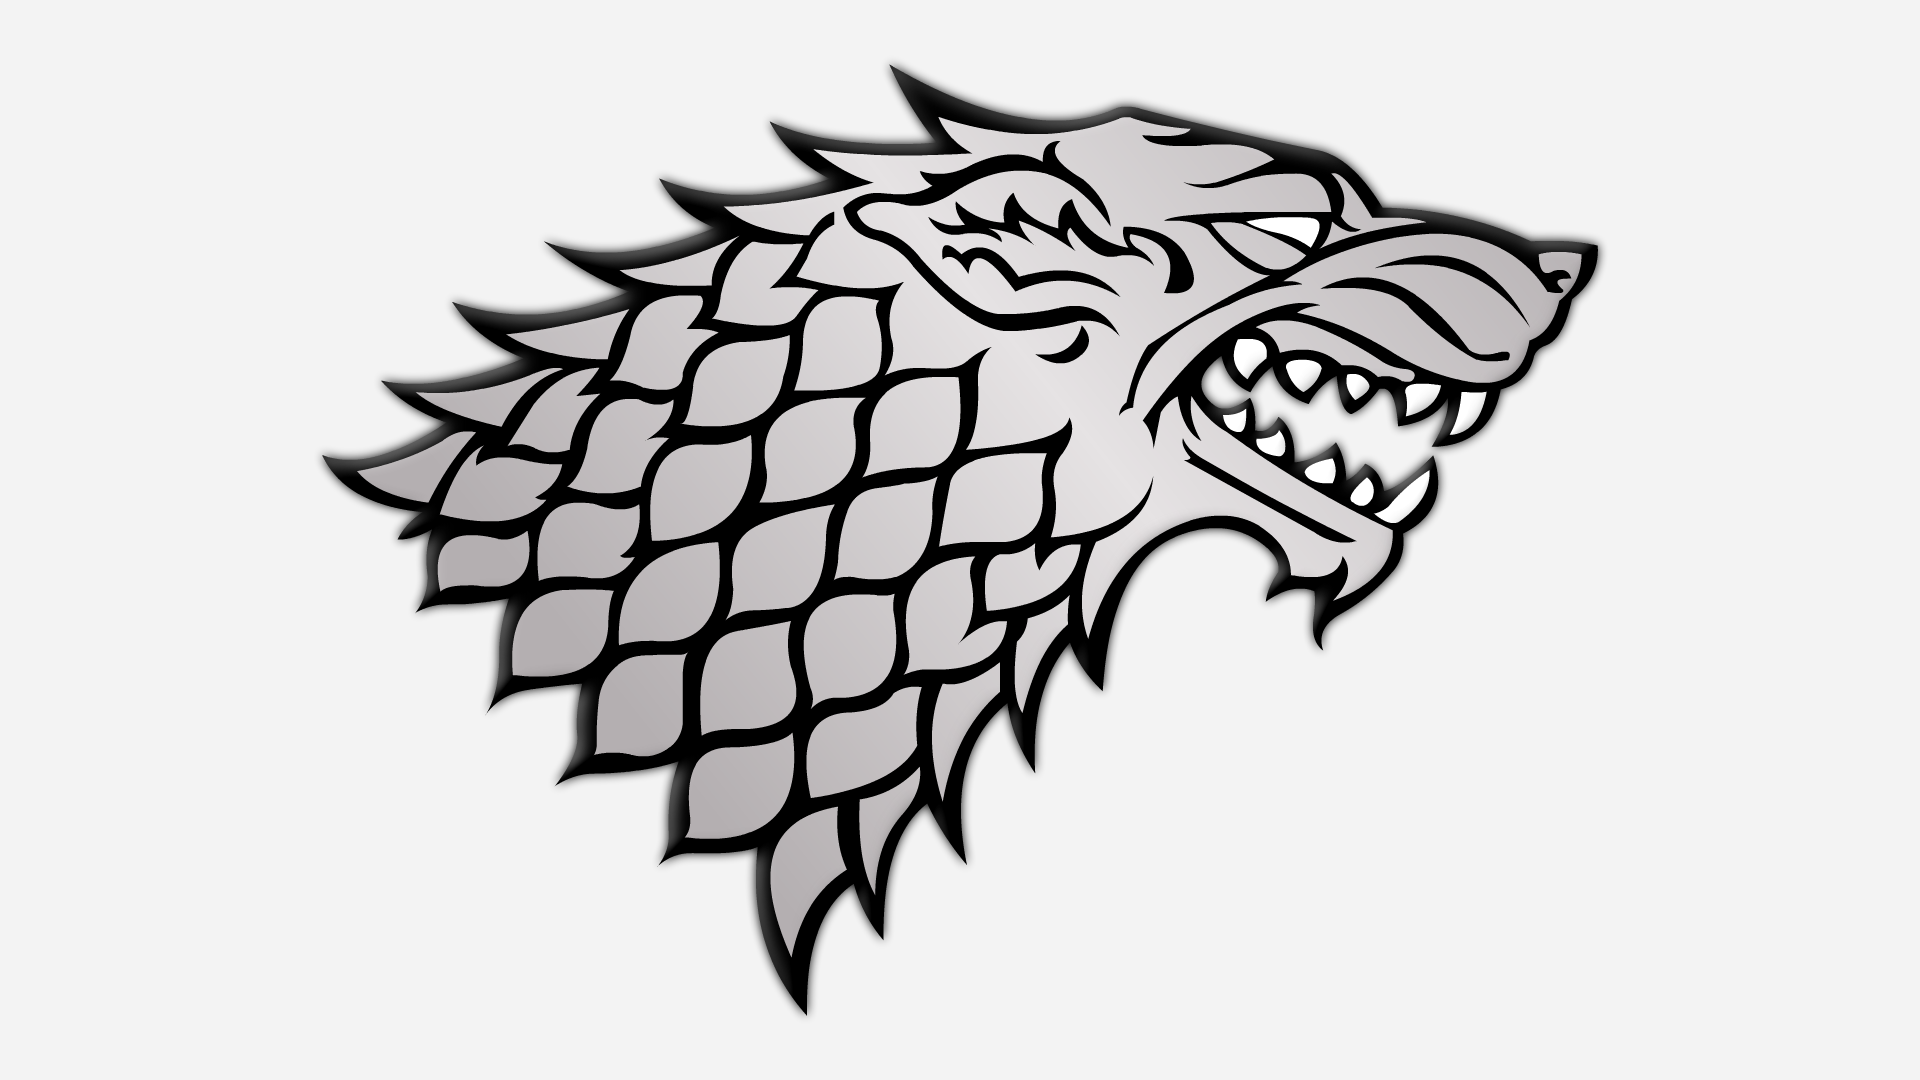 Winterfell Symbol Symbols Free Download